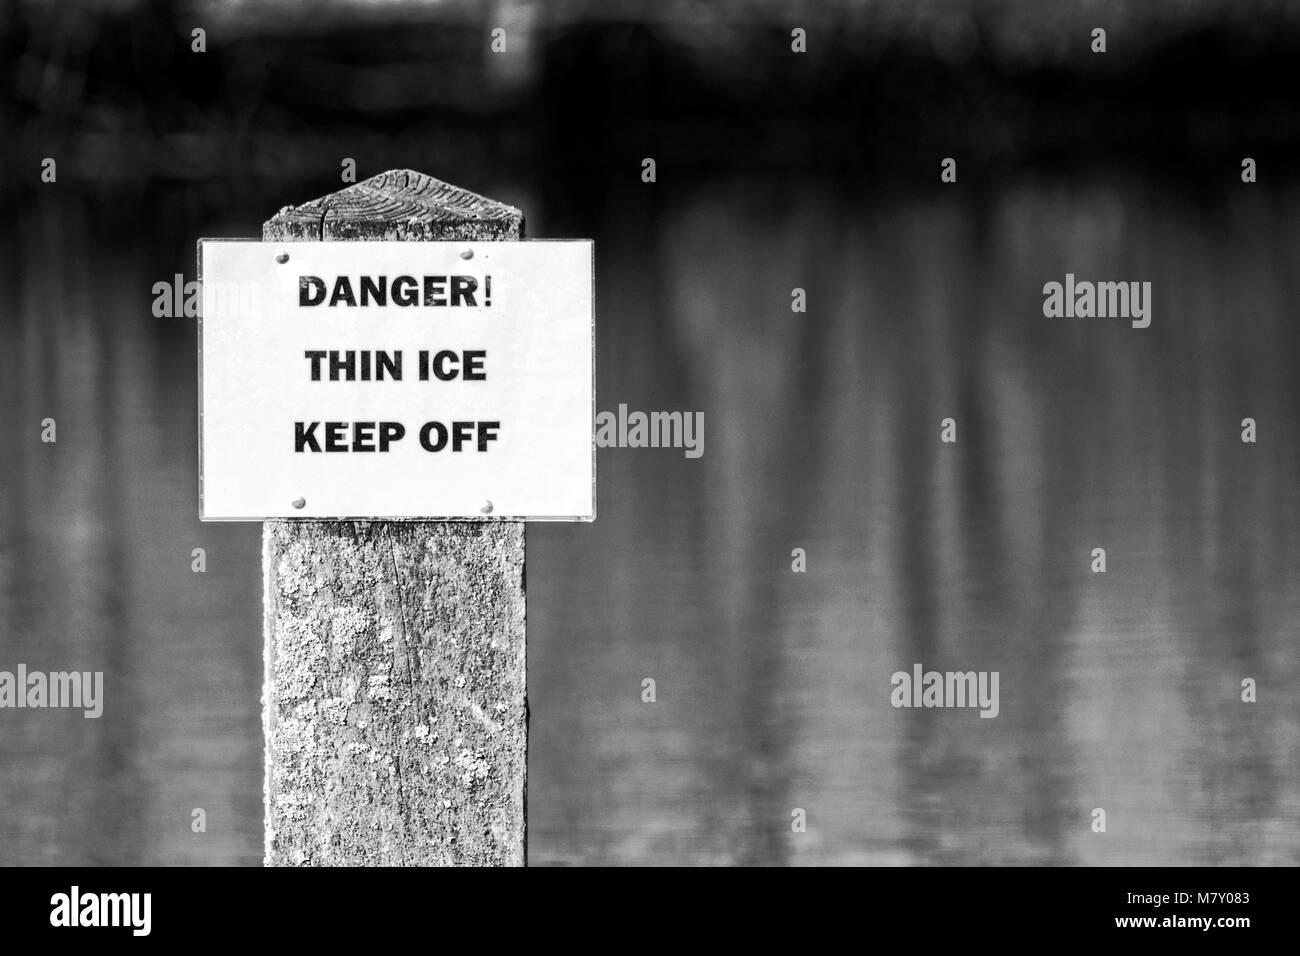 danger thin ice keep off warning sign unsafe beware alert notice winter cold freeze frozen cracked season seasonal - Stock Image